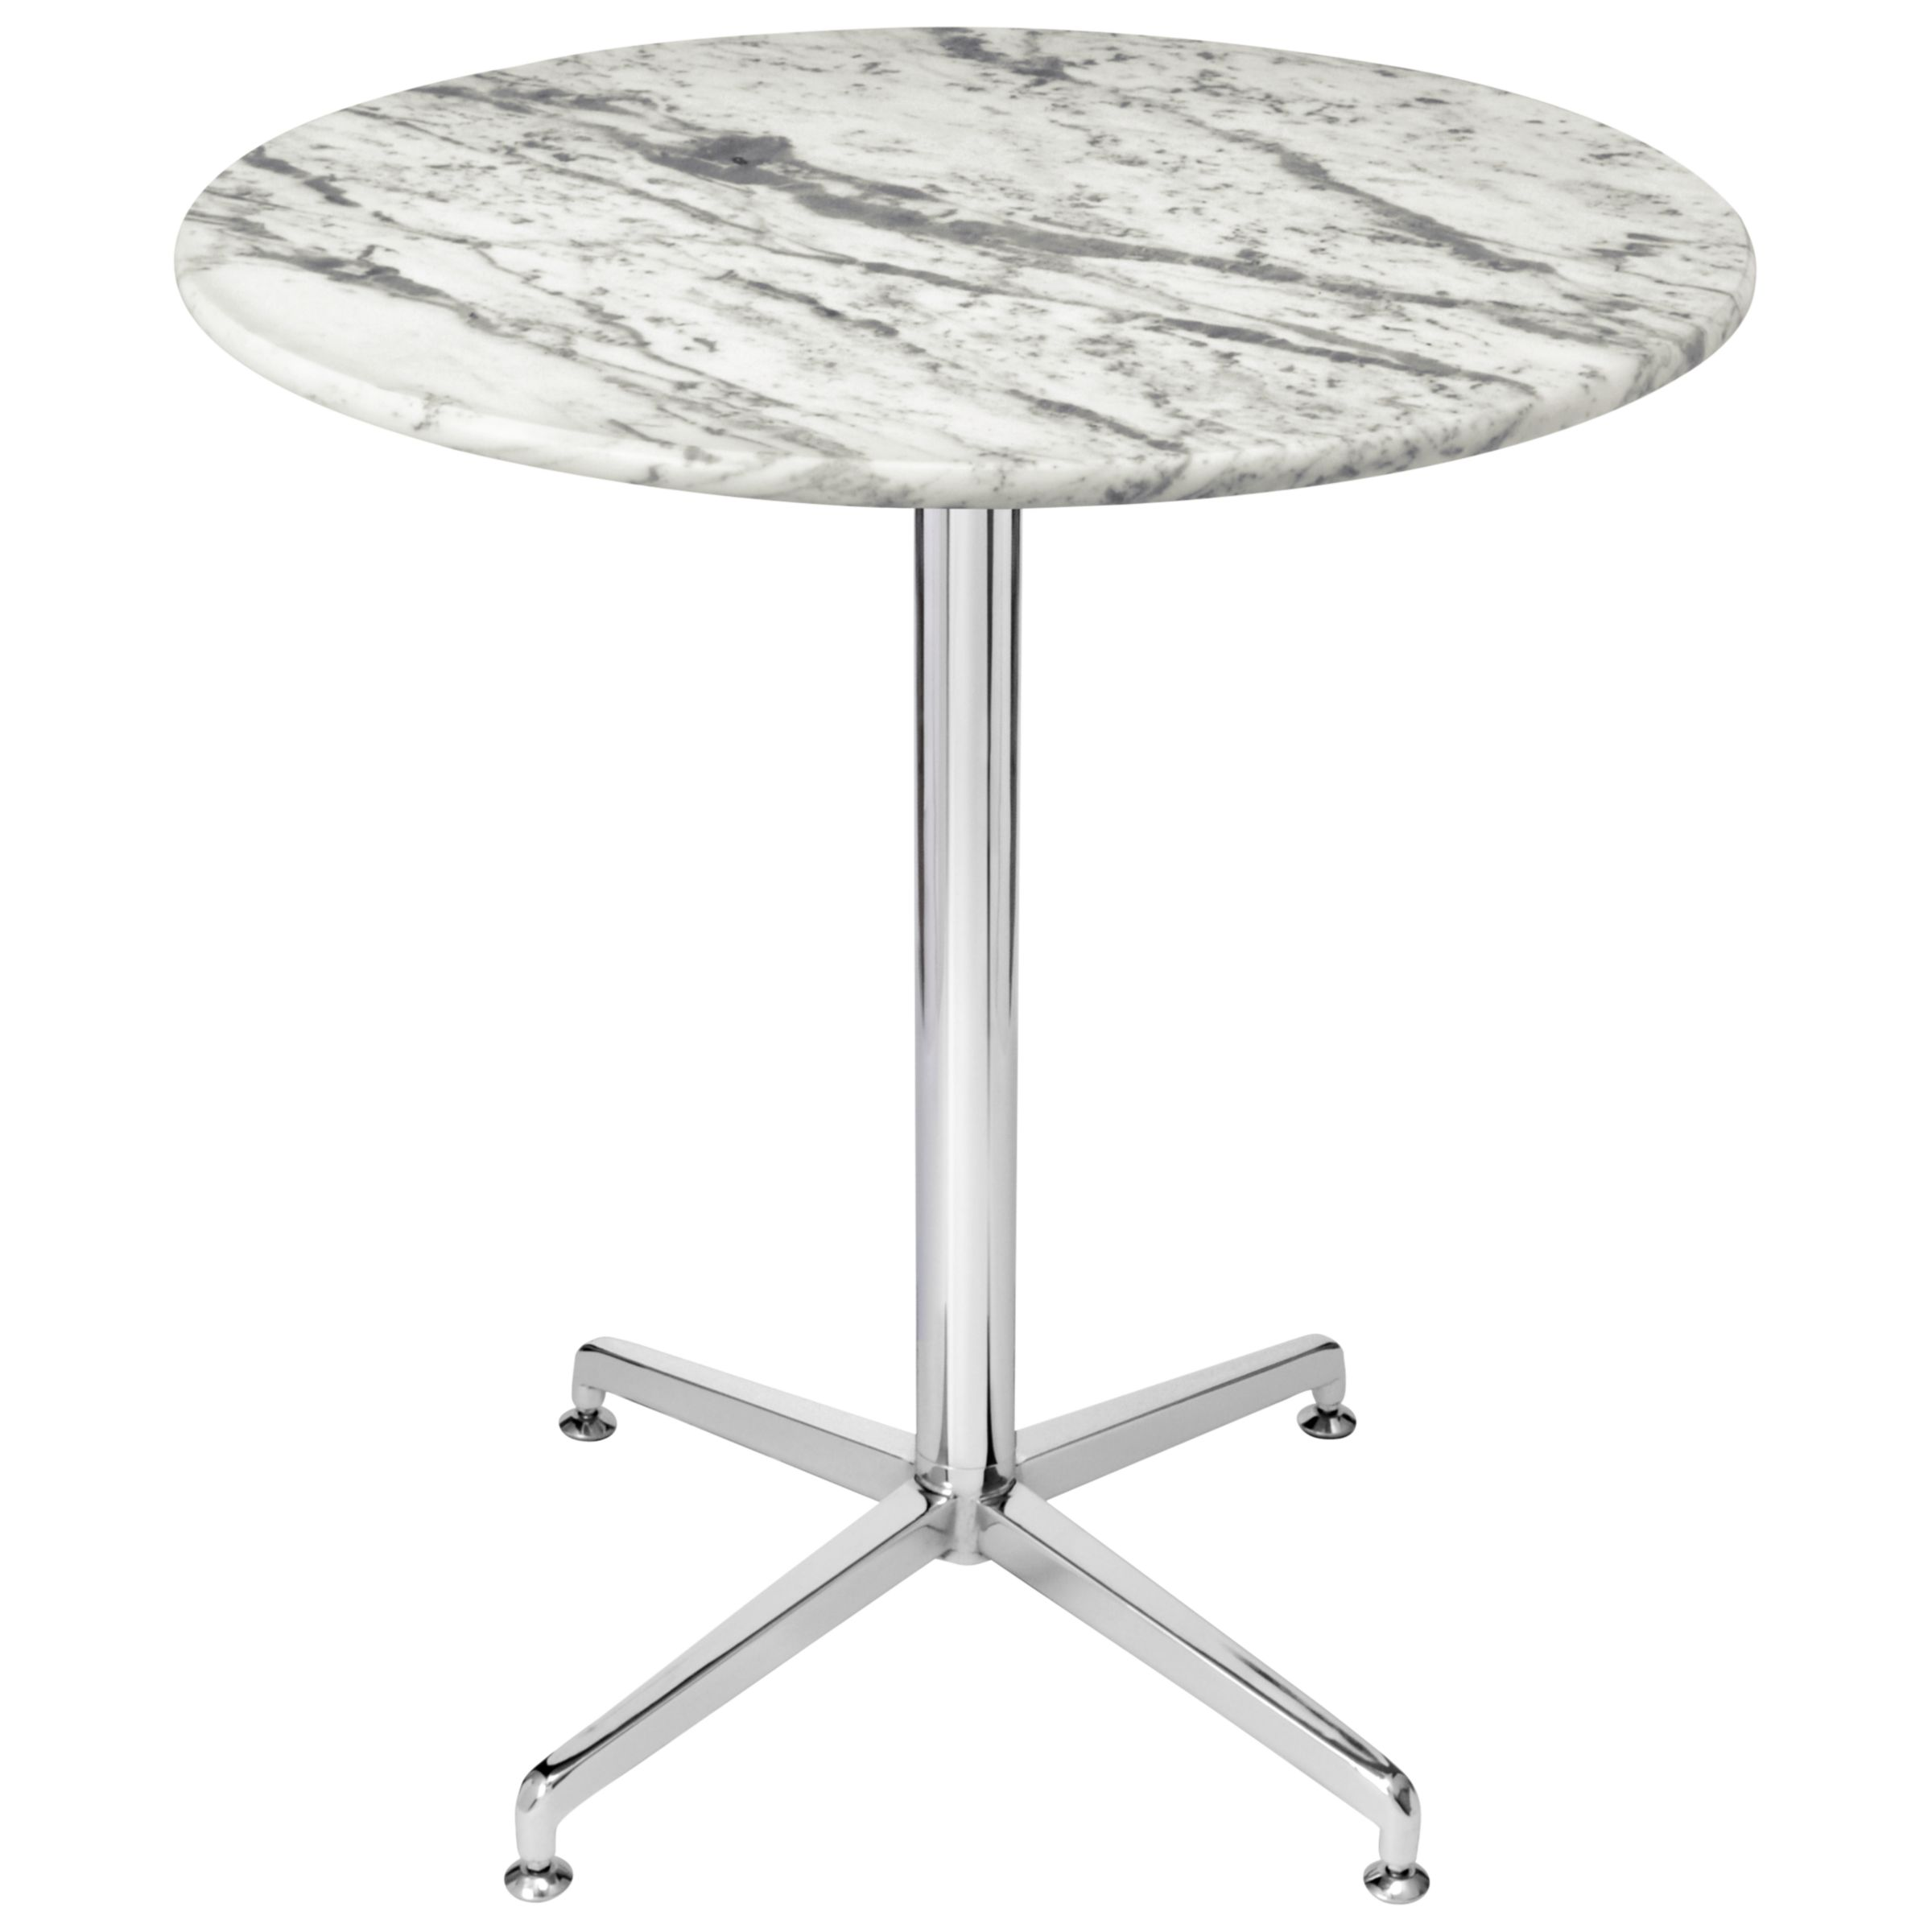 granite tables : 231289506 from www.comparestoreprices.co.uk size 1600 x 1600 jpeg 133kB